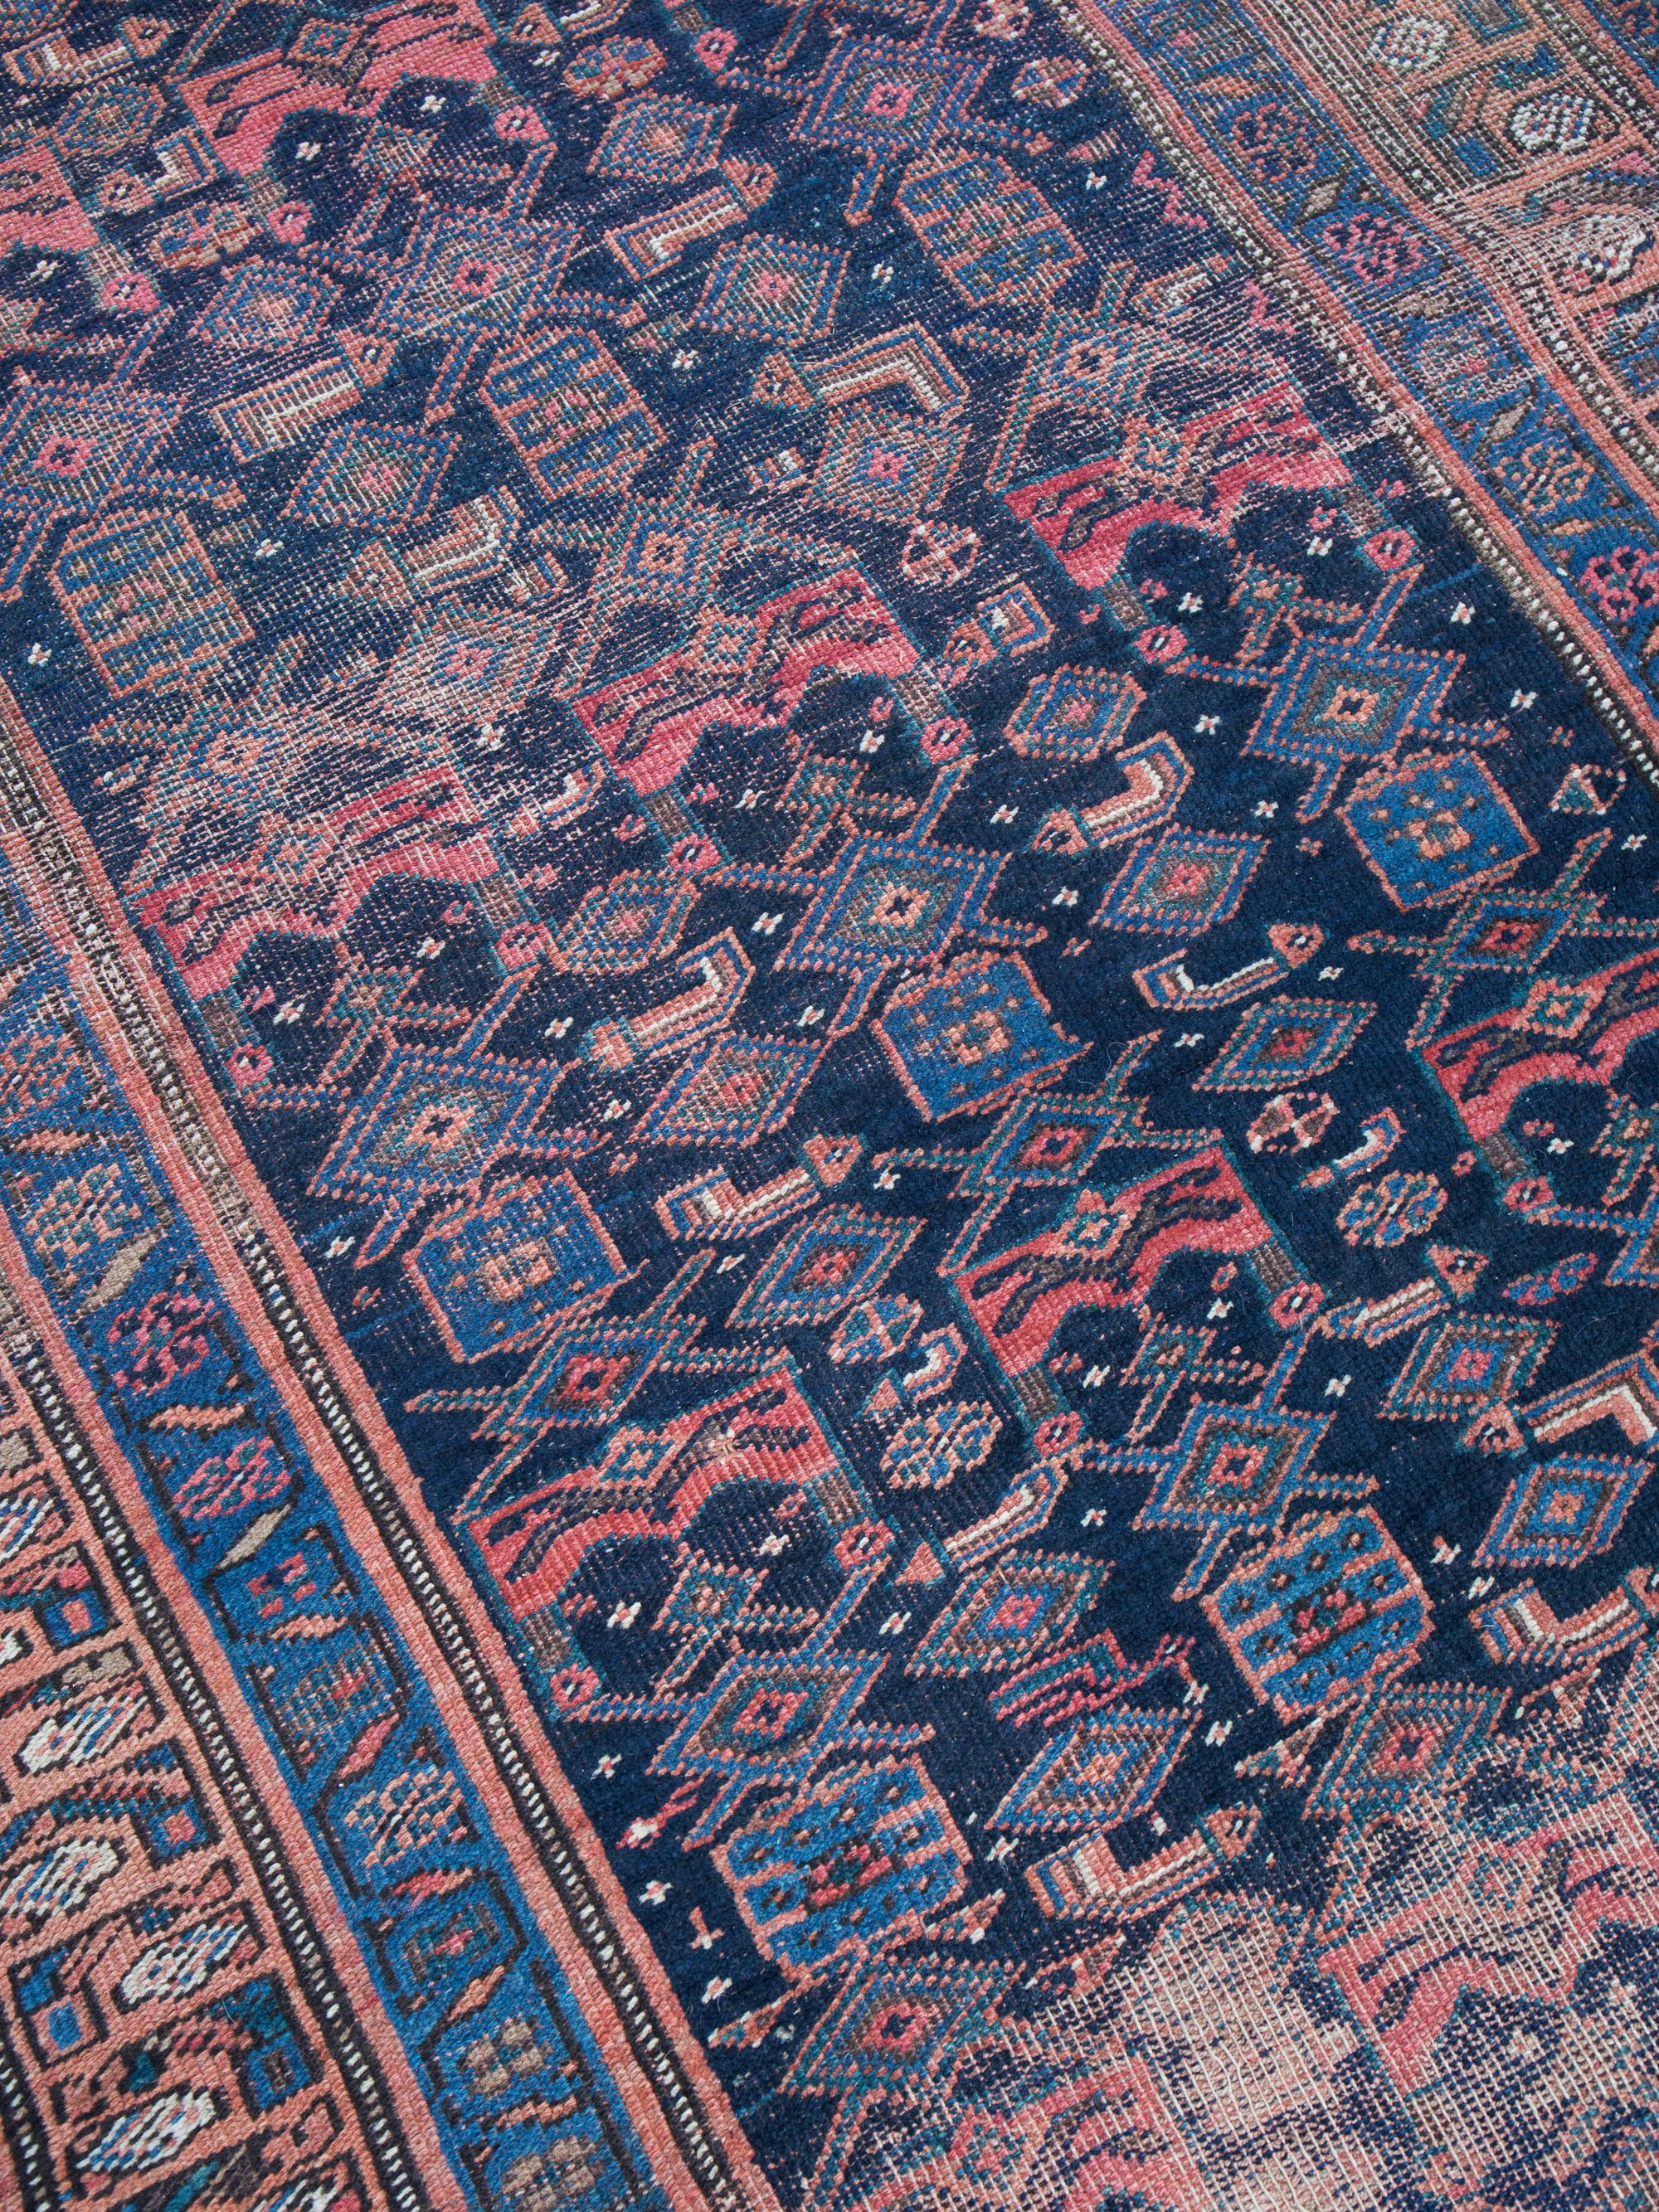 Vintage Persian rug Pile low Colors navy field red & blue accents